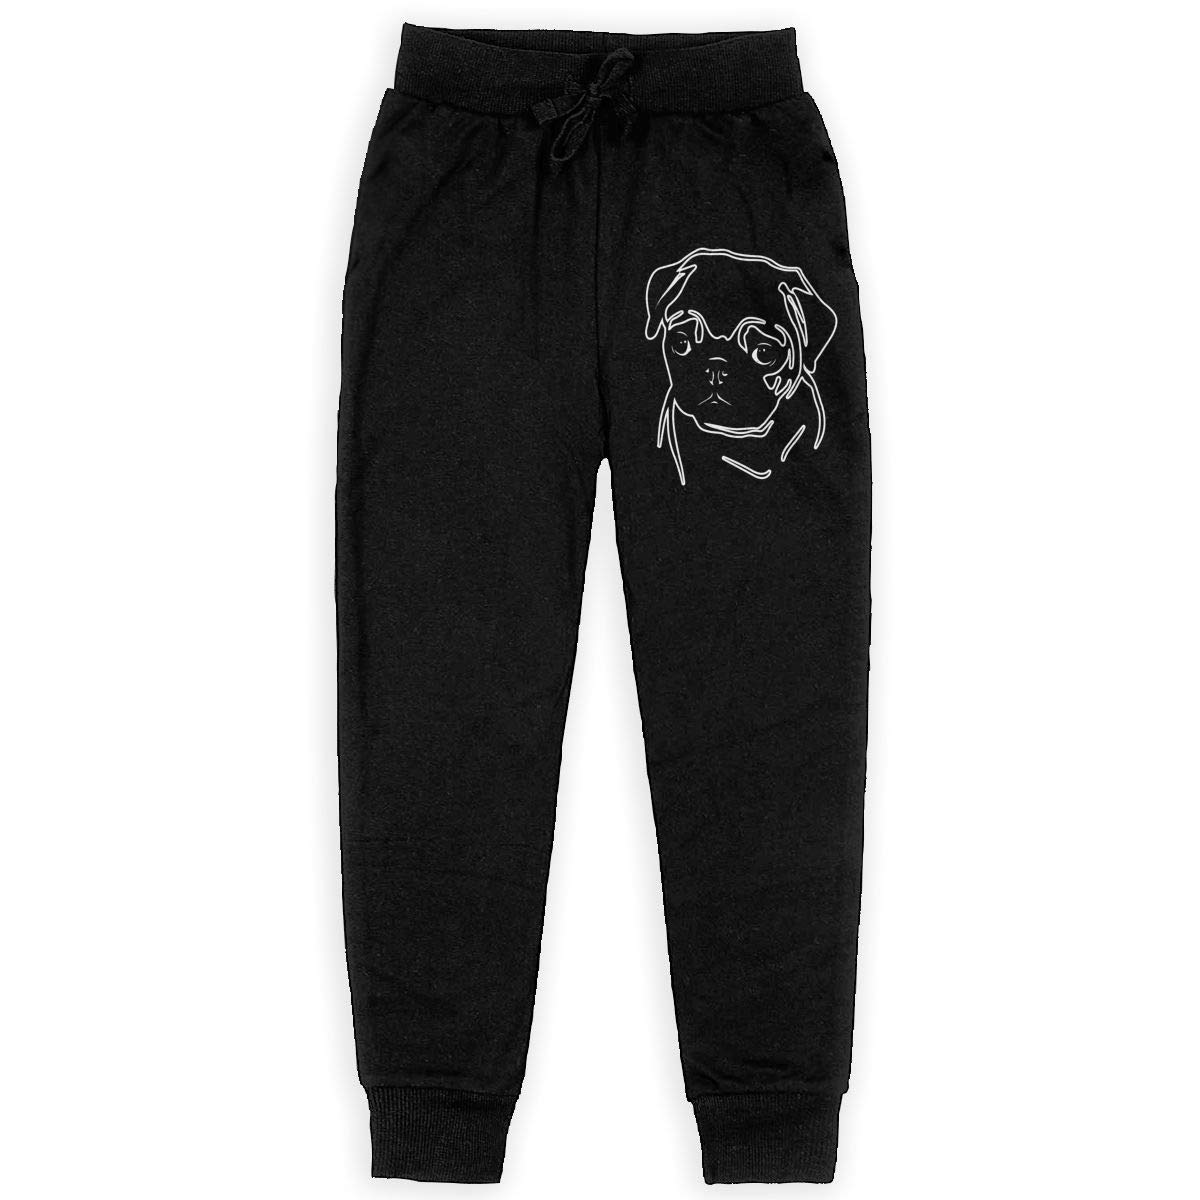 Bing4Bing Pug Dog Teenagers Cotton Sweatpants Comfortable Joggers Pants Active Pants